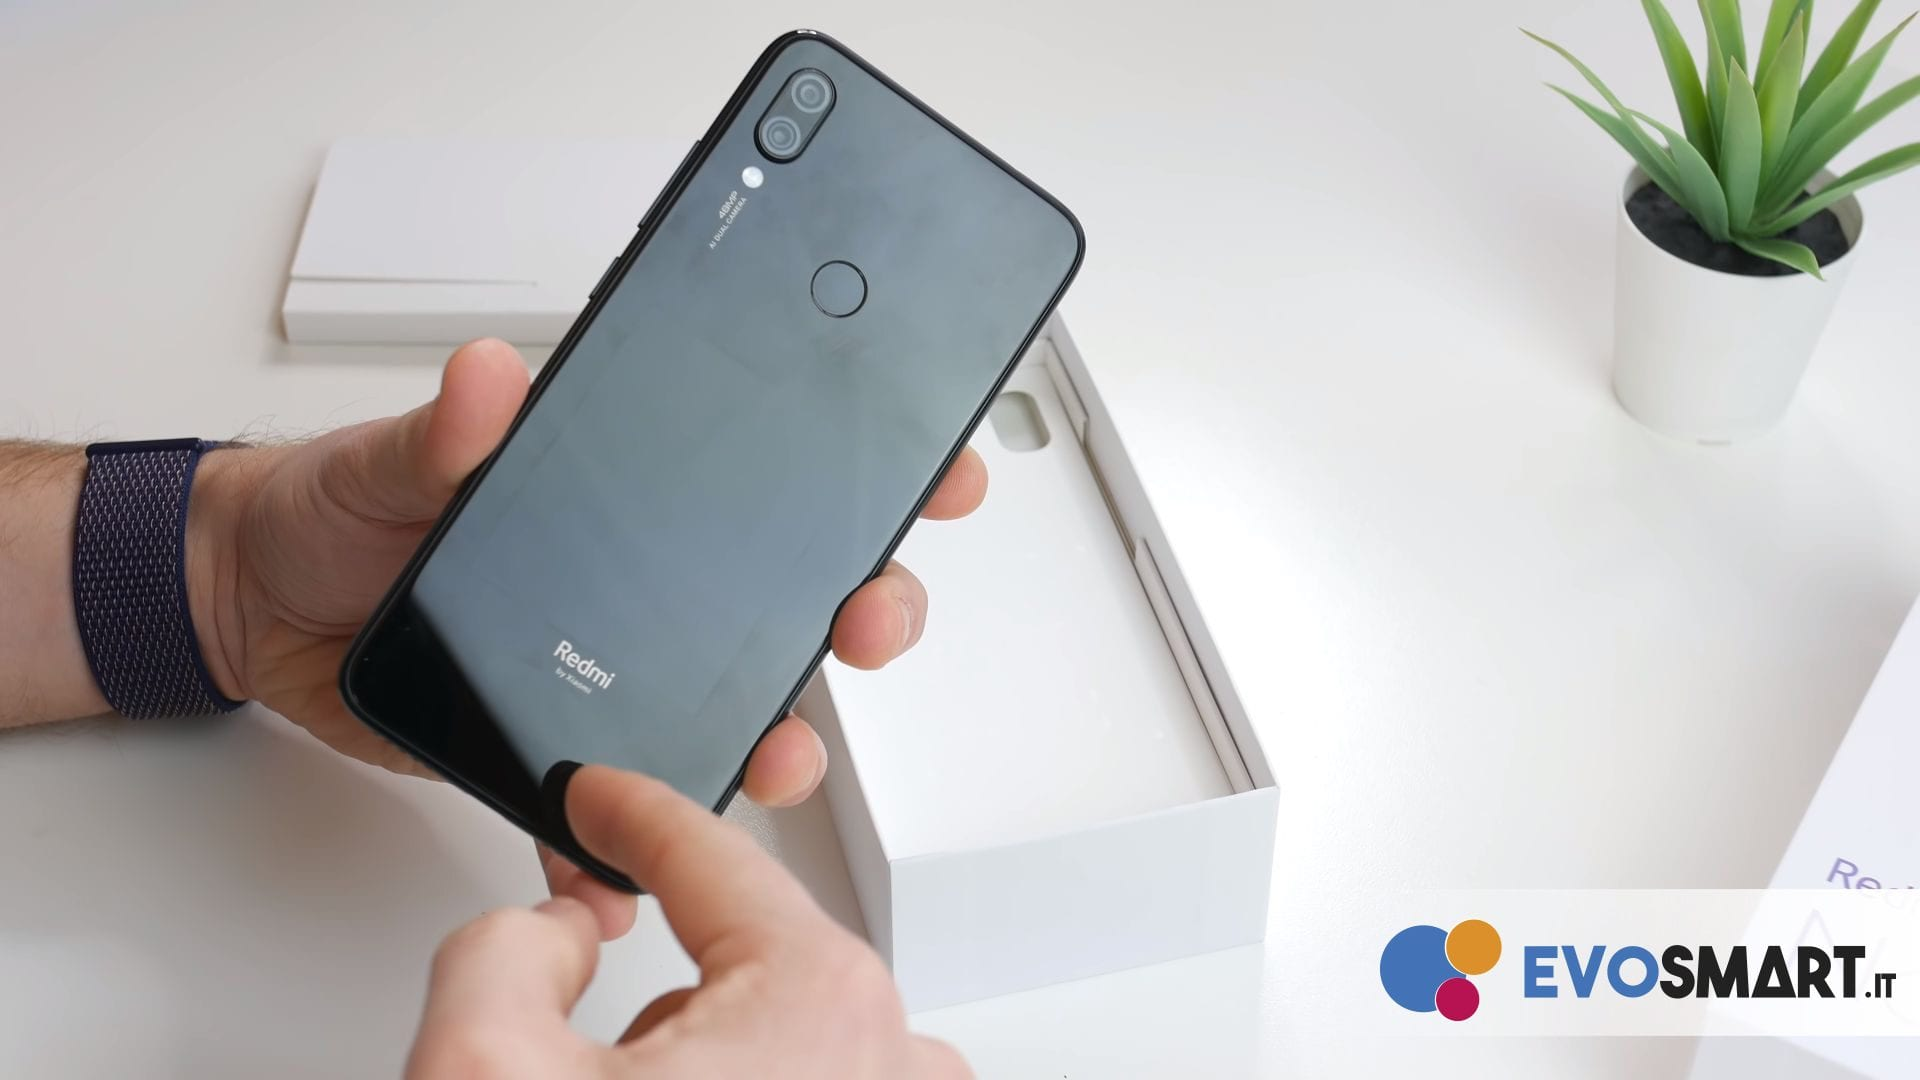 redmi note 7 unboxing 2